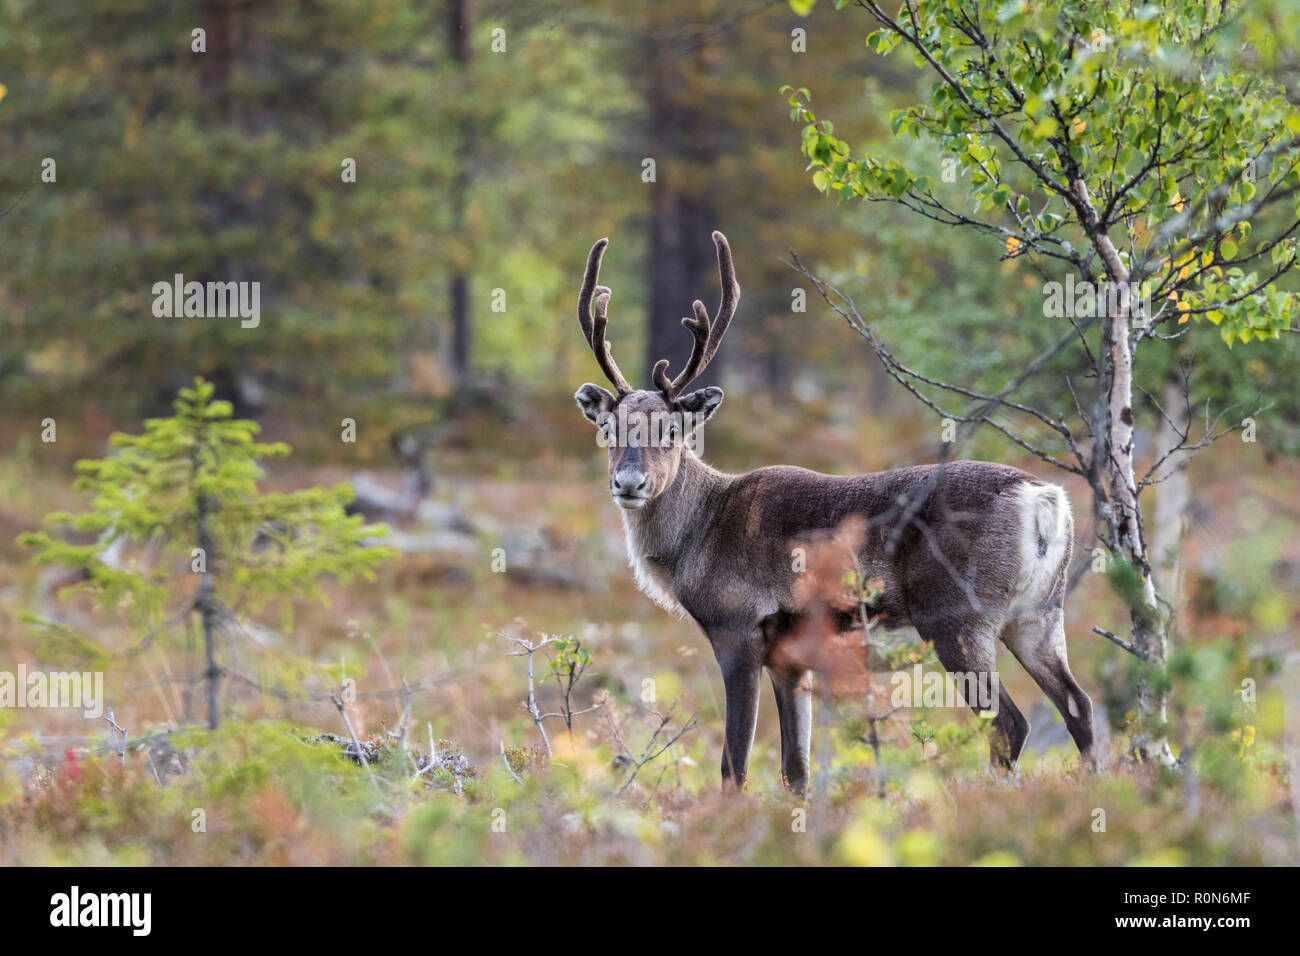 Reindeer, Rangifer tarandus walking in forest, having big antlers, looking in to the camera, Gällivare county, Swedish Lapland, Sweden - Stock Image